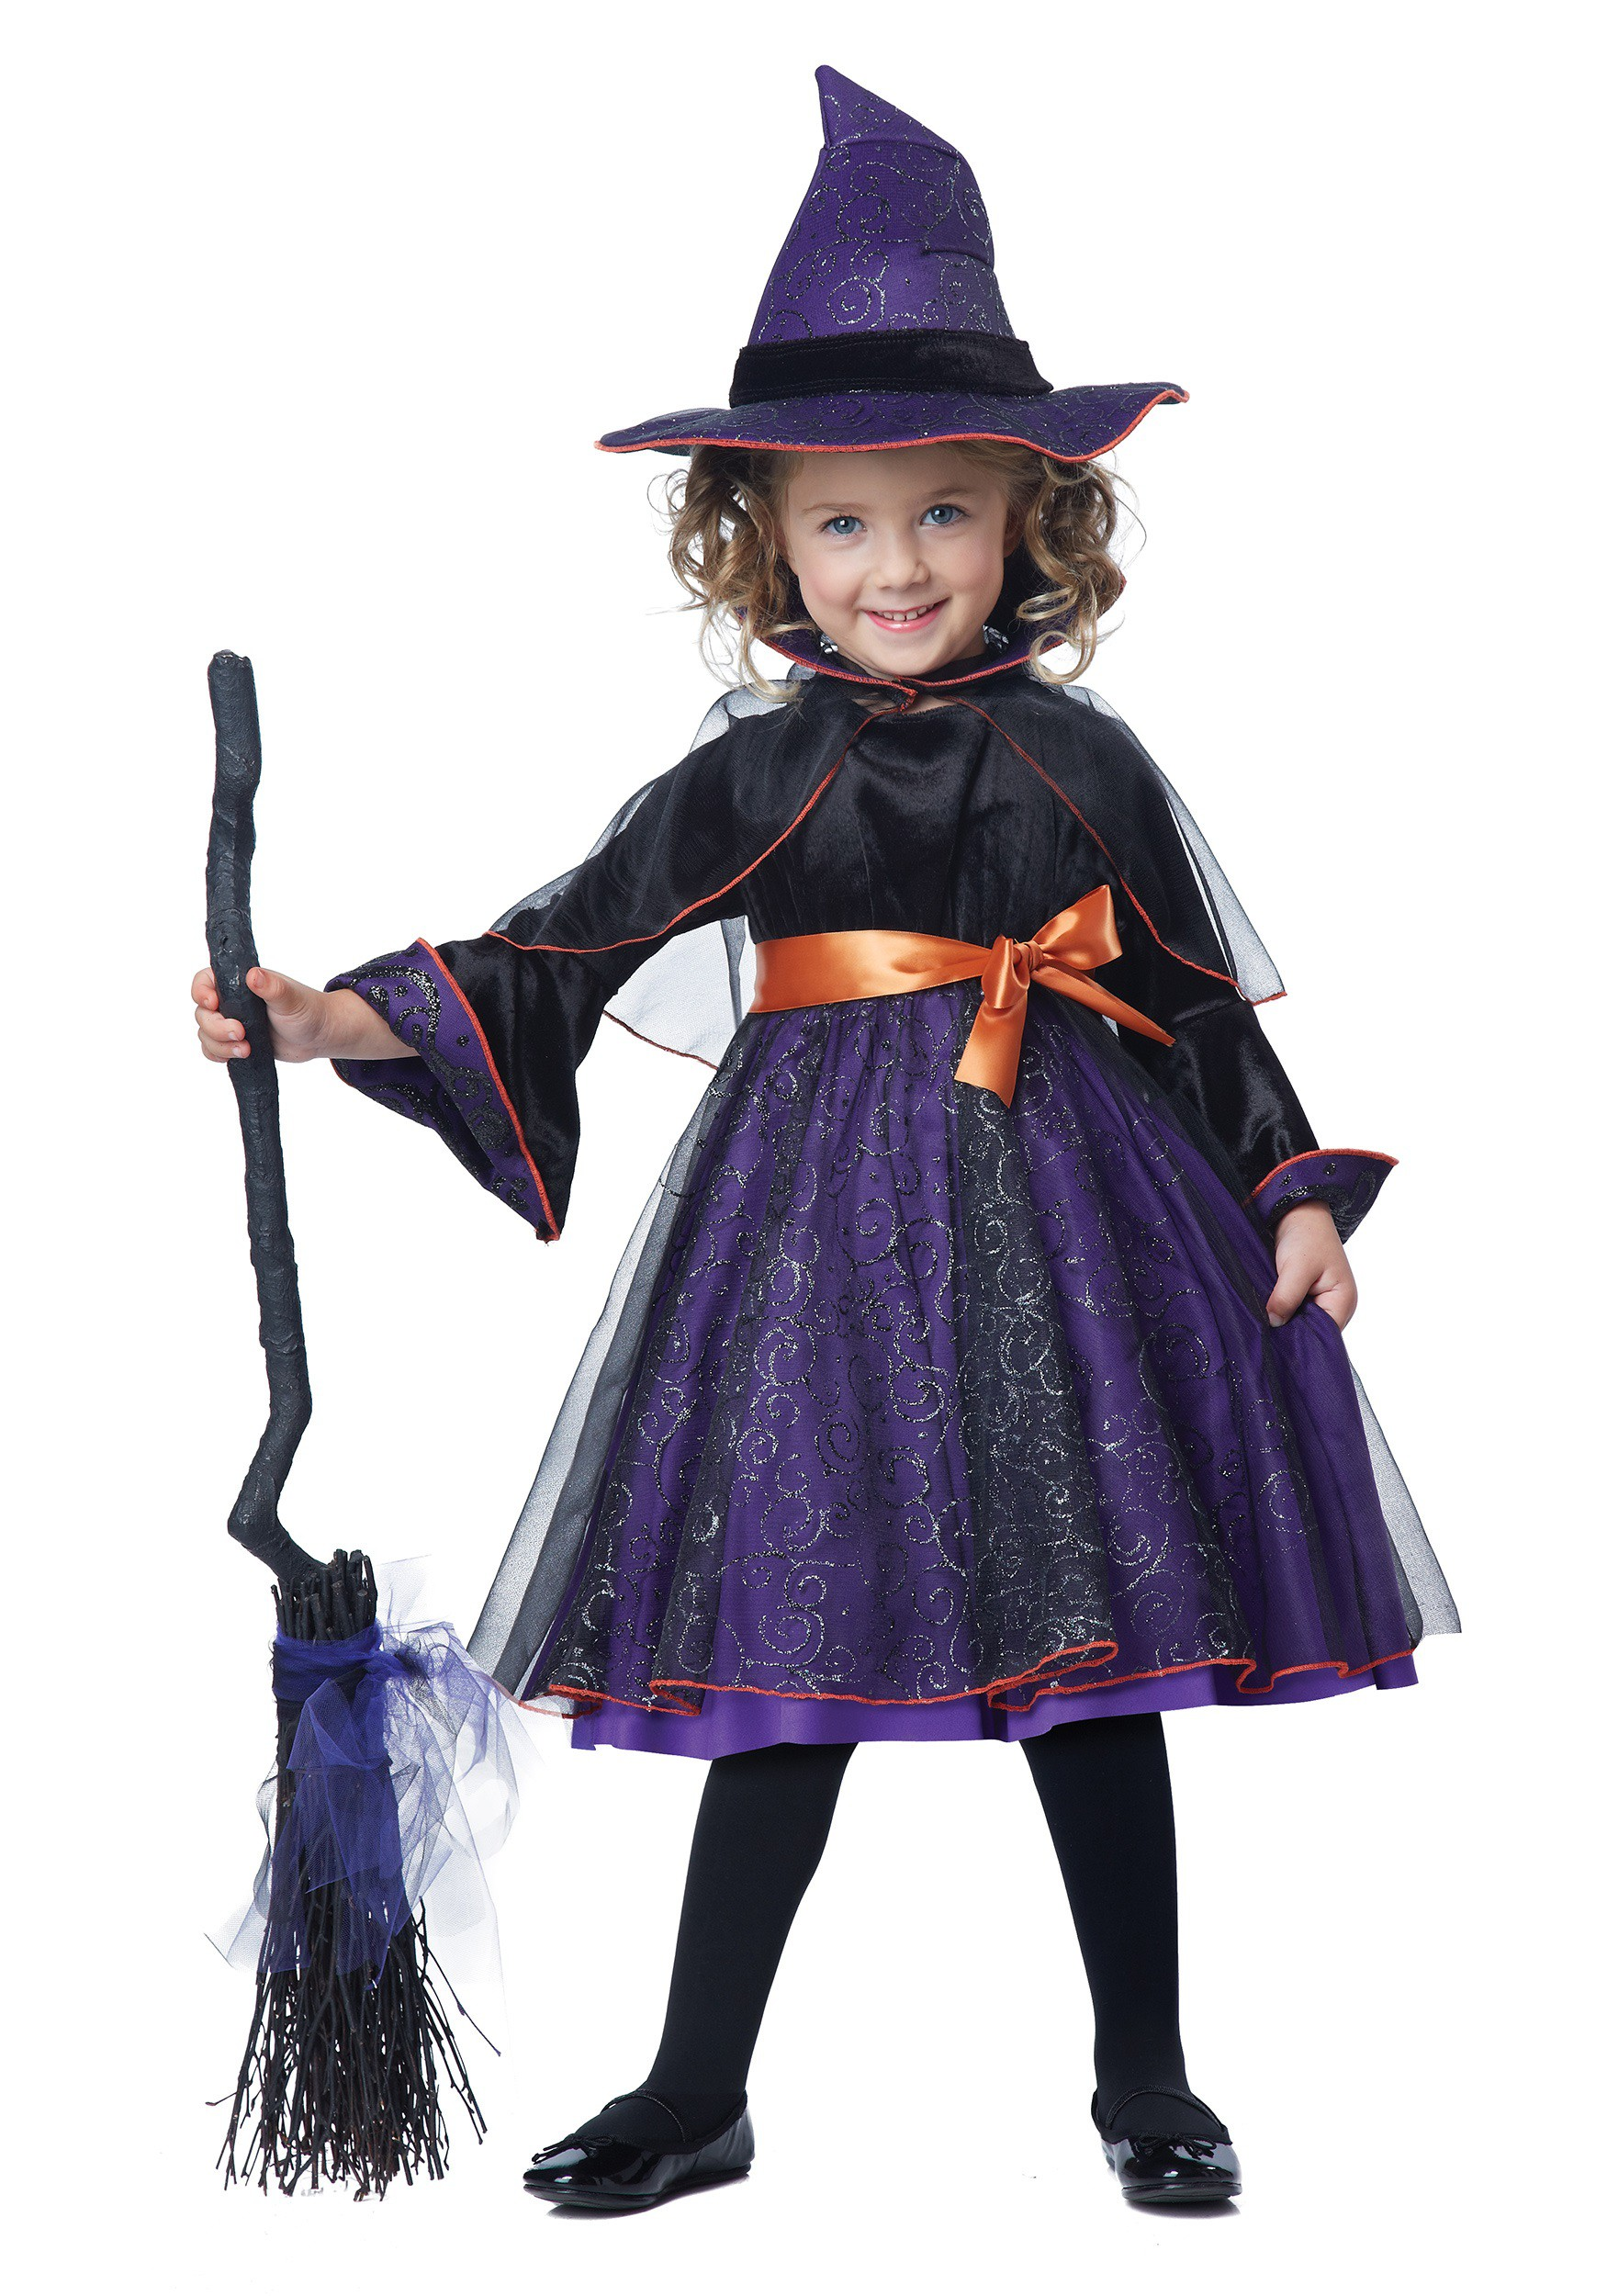 Witch Costumes For Adults & Kids - HalloweenCostumes.com